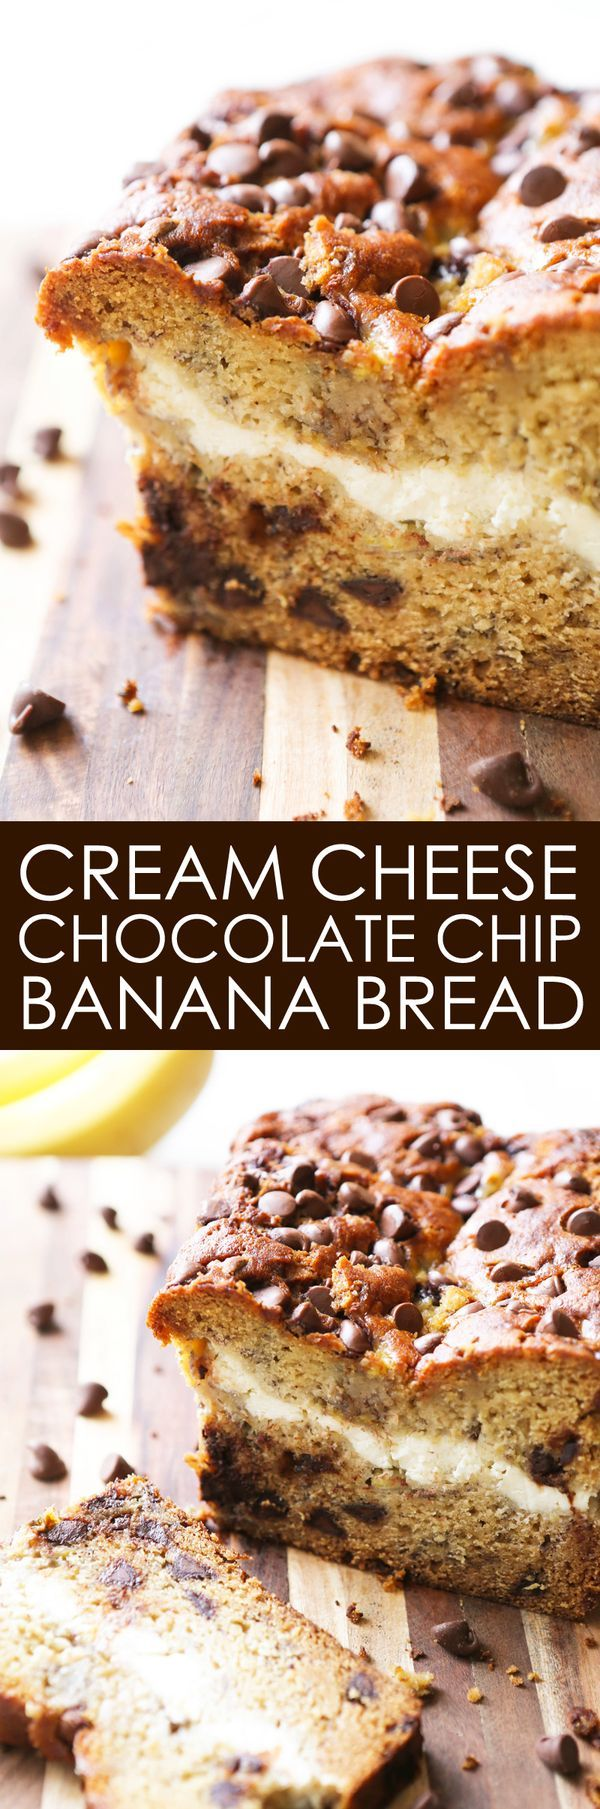 Cream Cheese Chocolate Chip Banana Bread | Banana bread transformed into an irresistible dessert! This stuff is like crack.